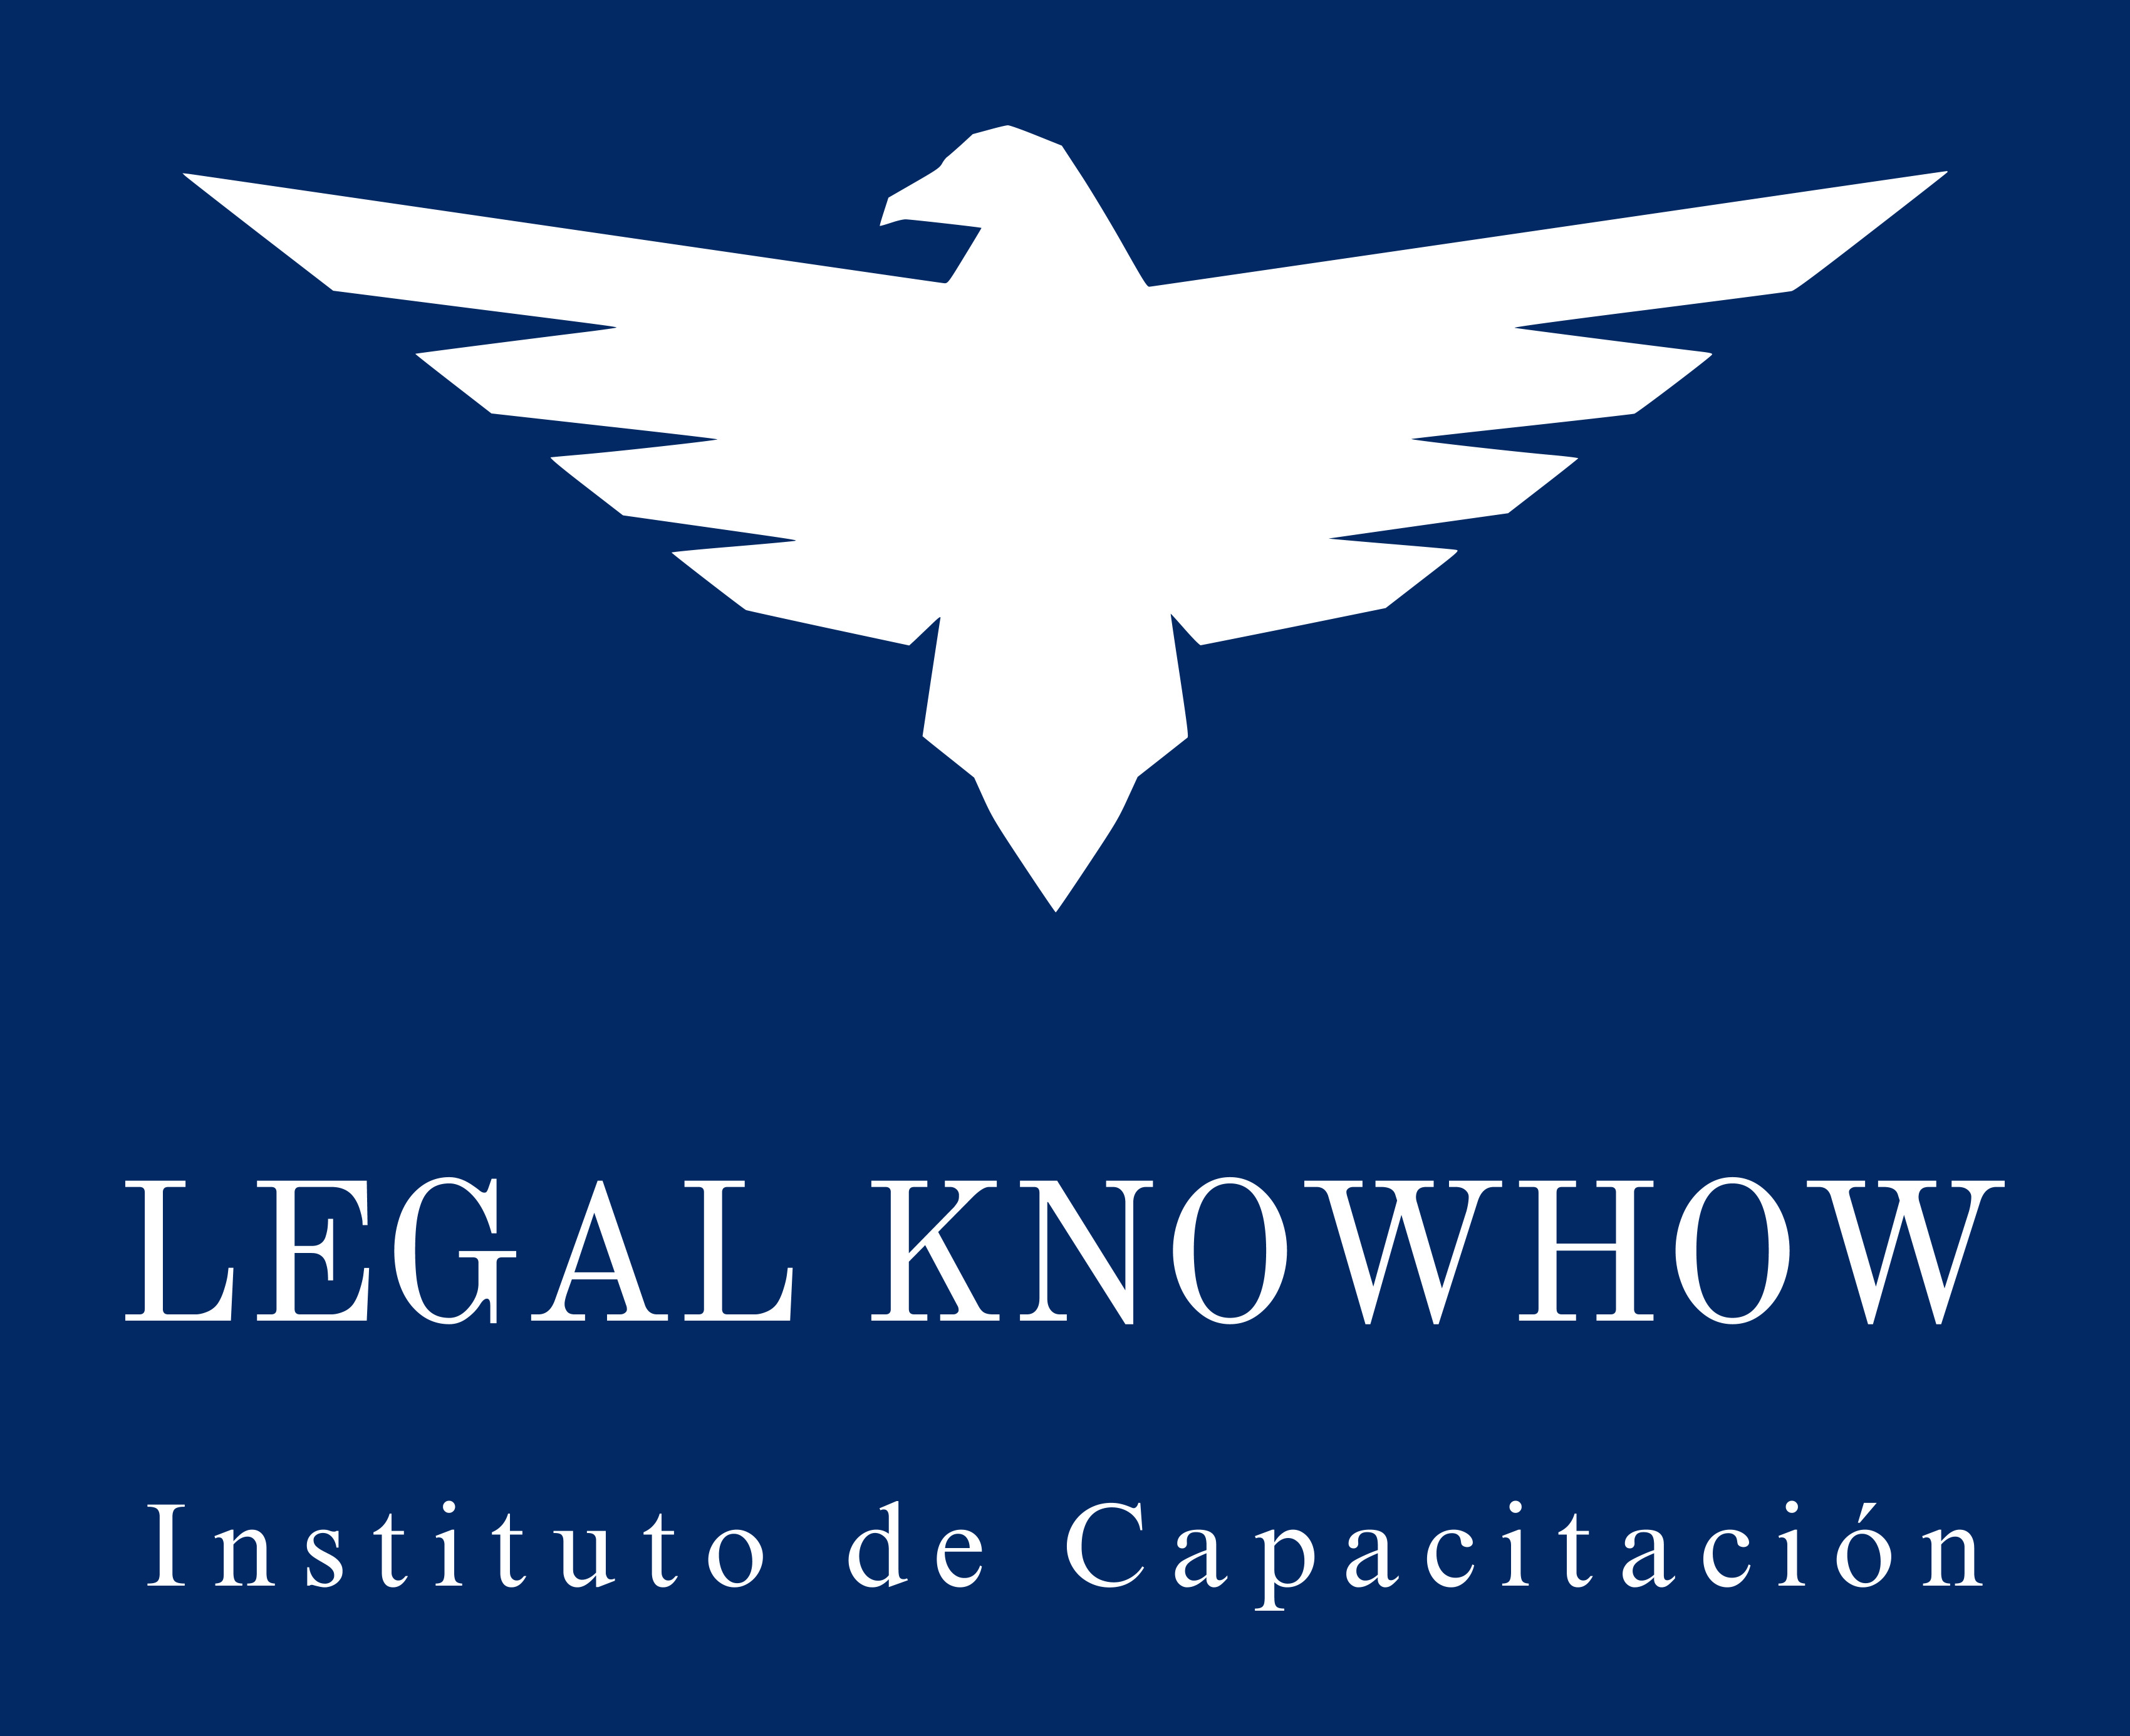 Legal Knowhow Instituto de Capacitación